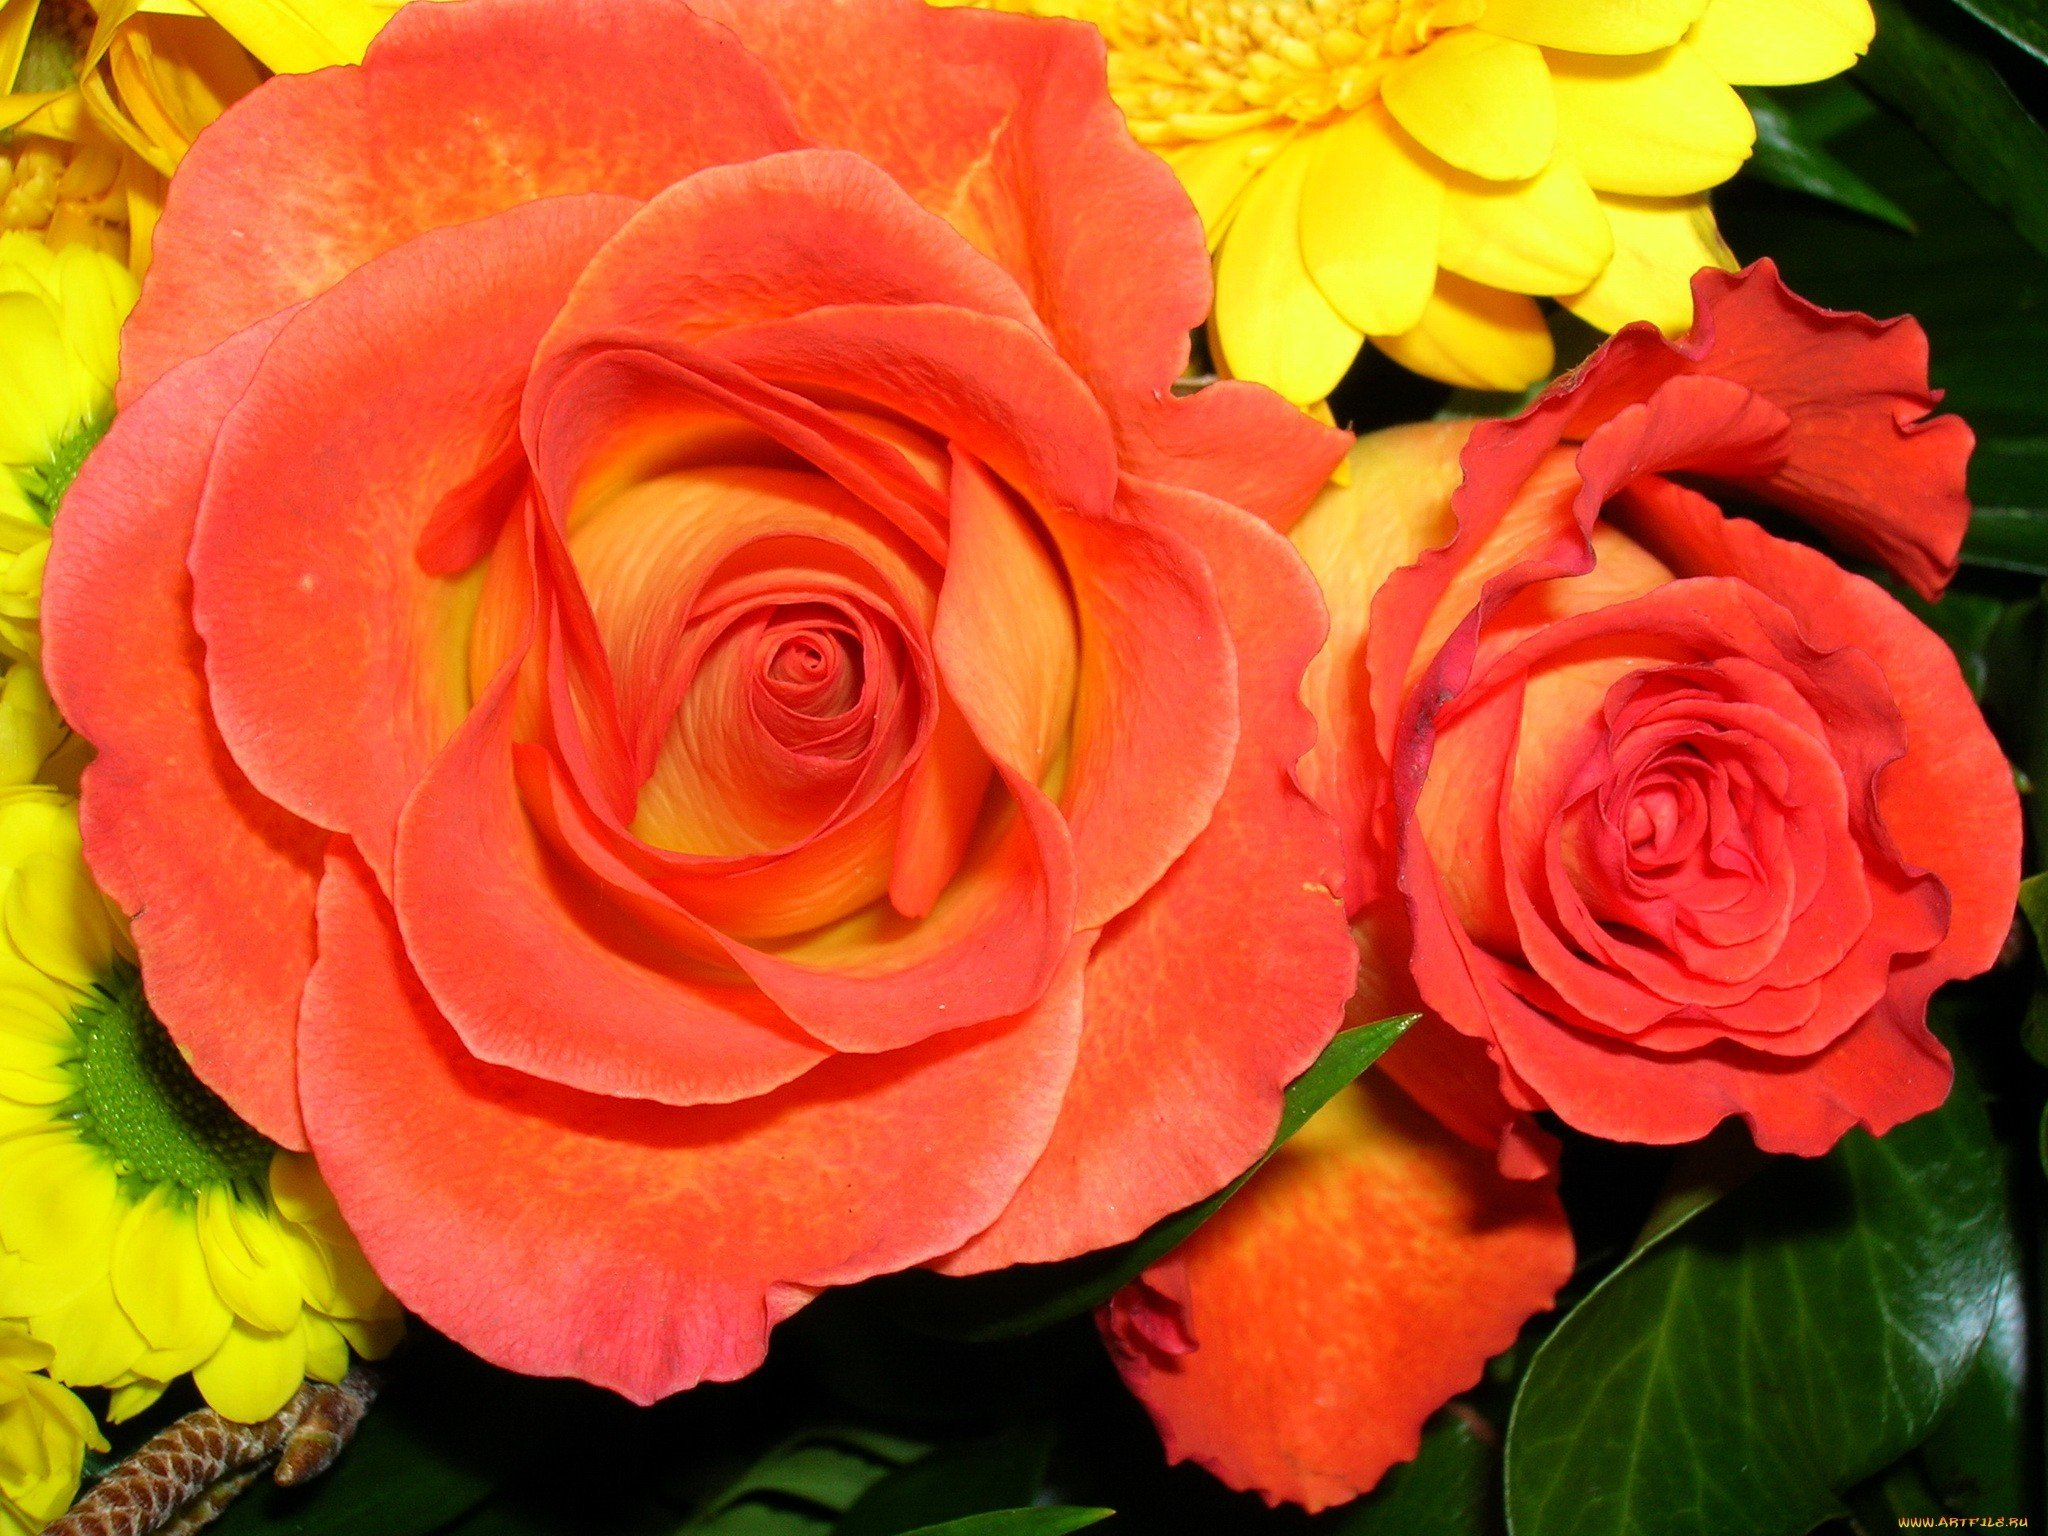 Nature Red Flowers Yellow Orange Roses Wallpaper 2048x1536 236246 Wallpaperup